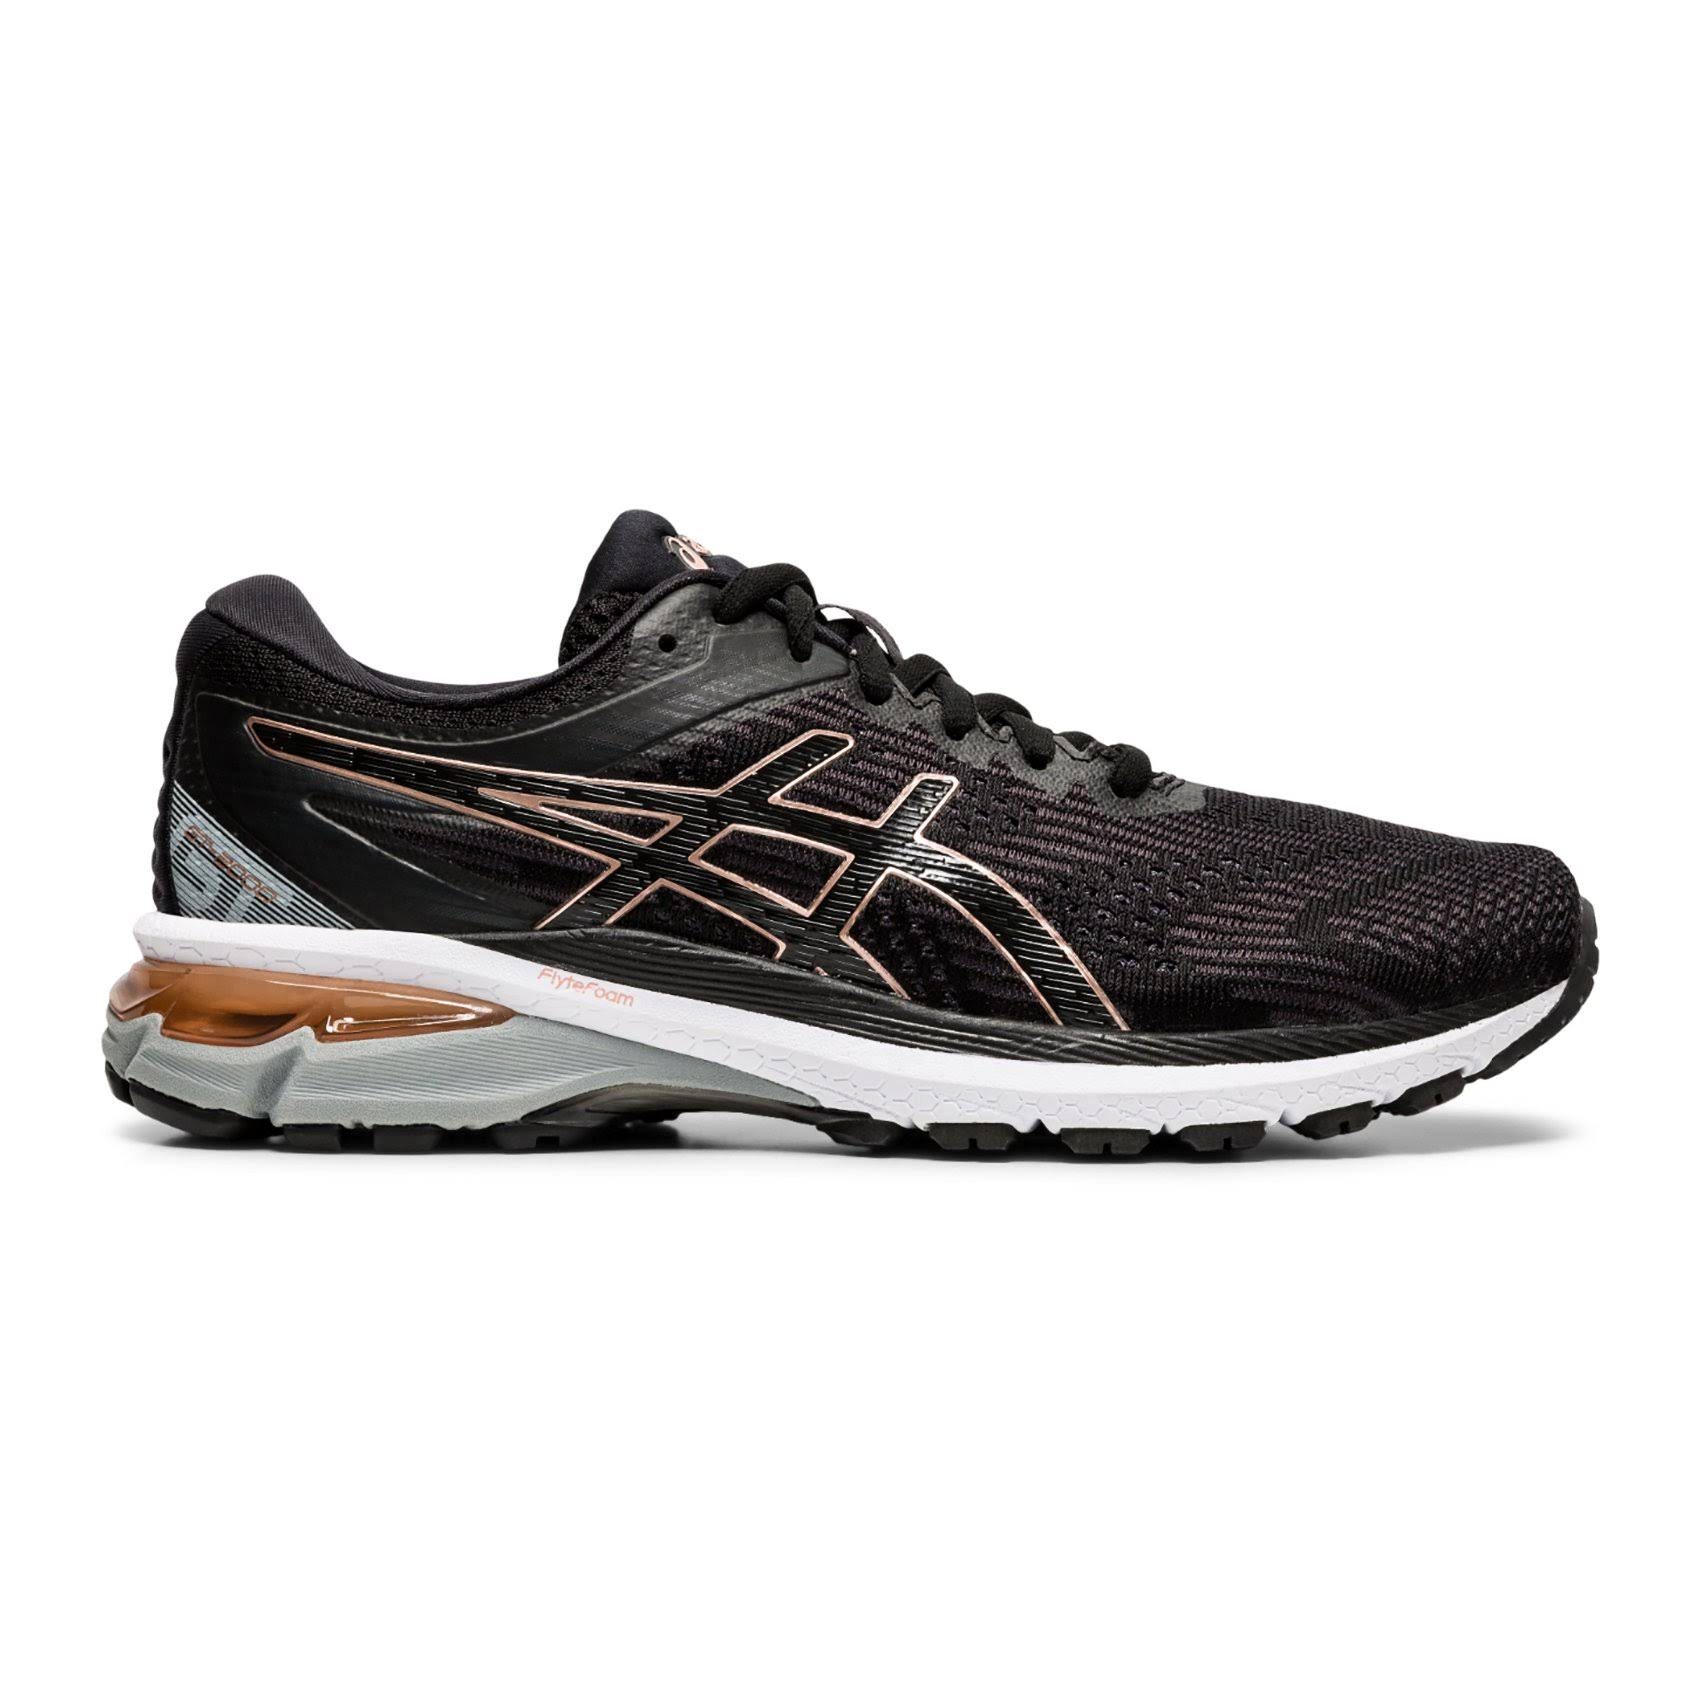 Asics Women's GT 2000 8 - Black - Rose Gold - 11 - D